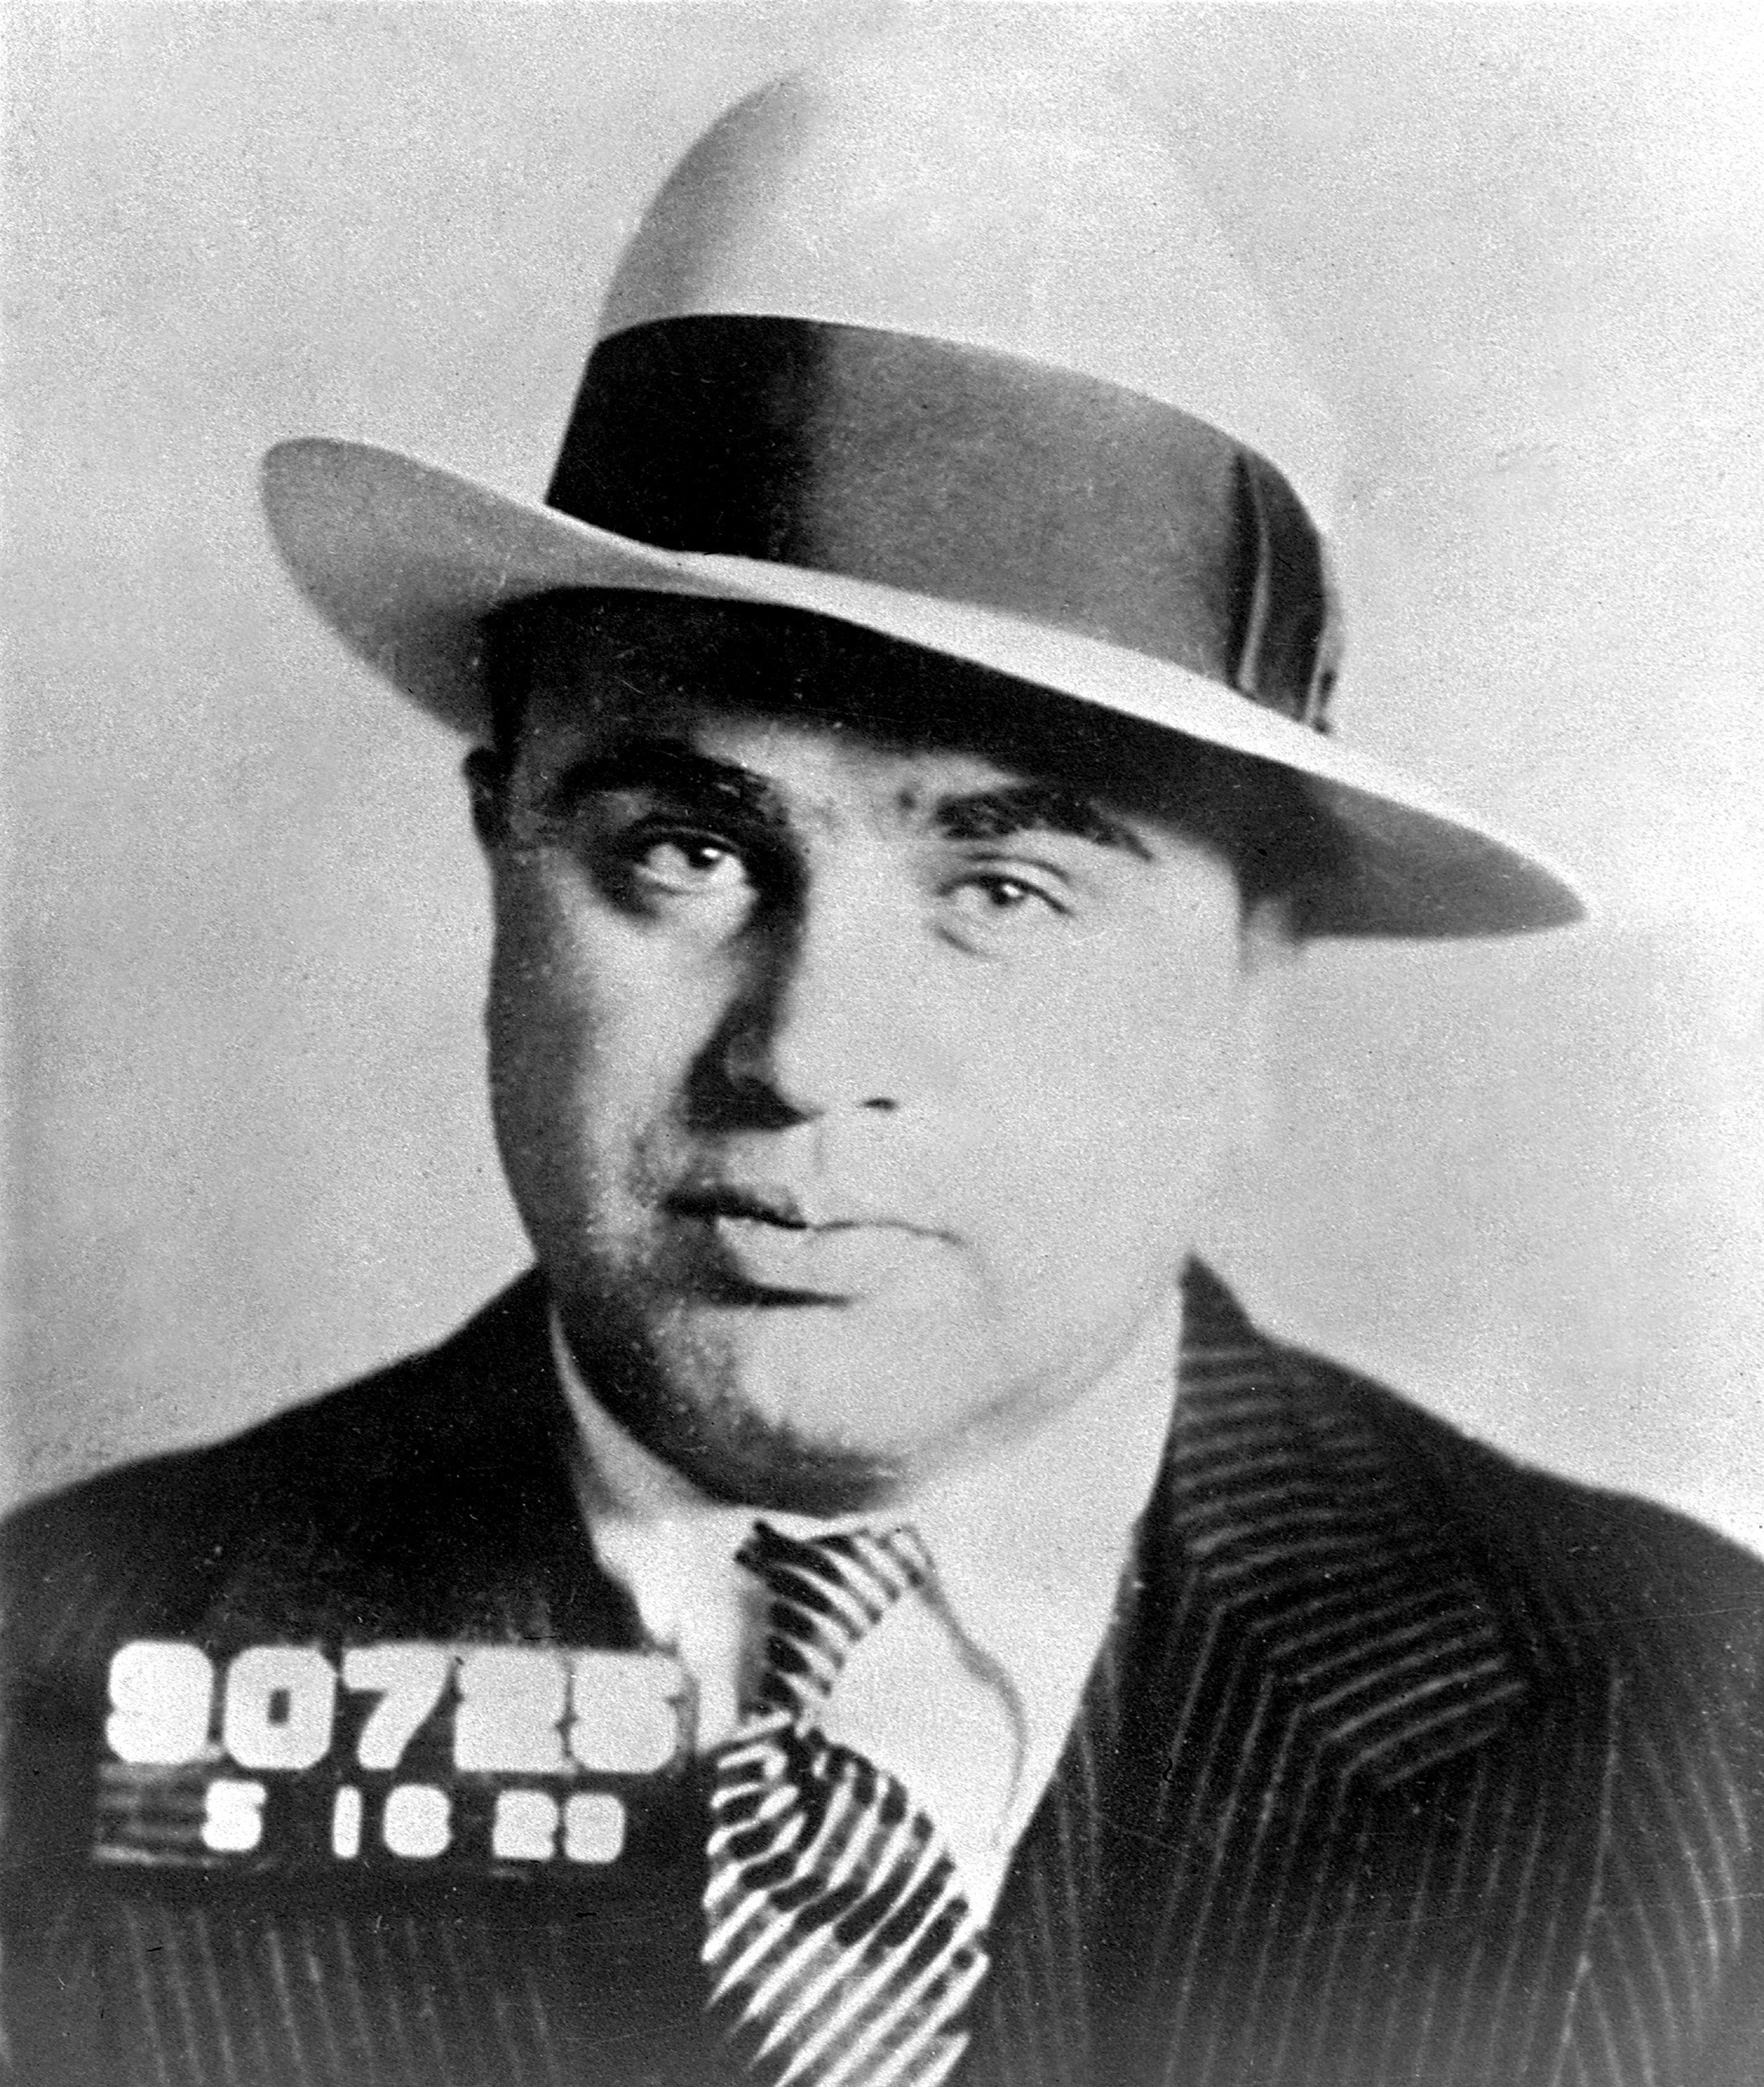 8 Things You Should Know About Al Capone